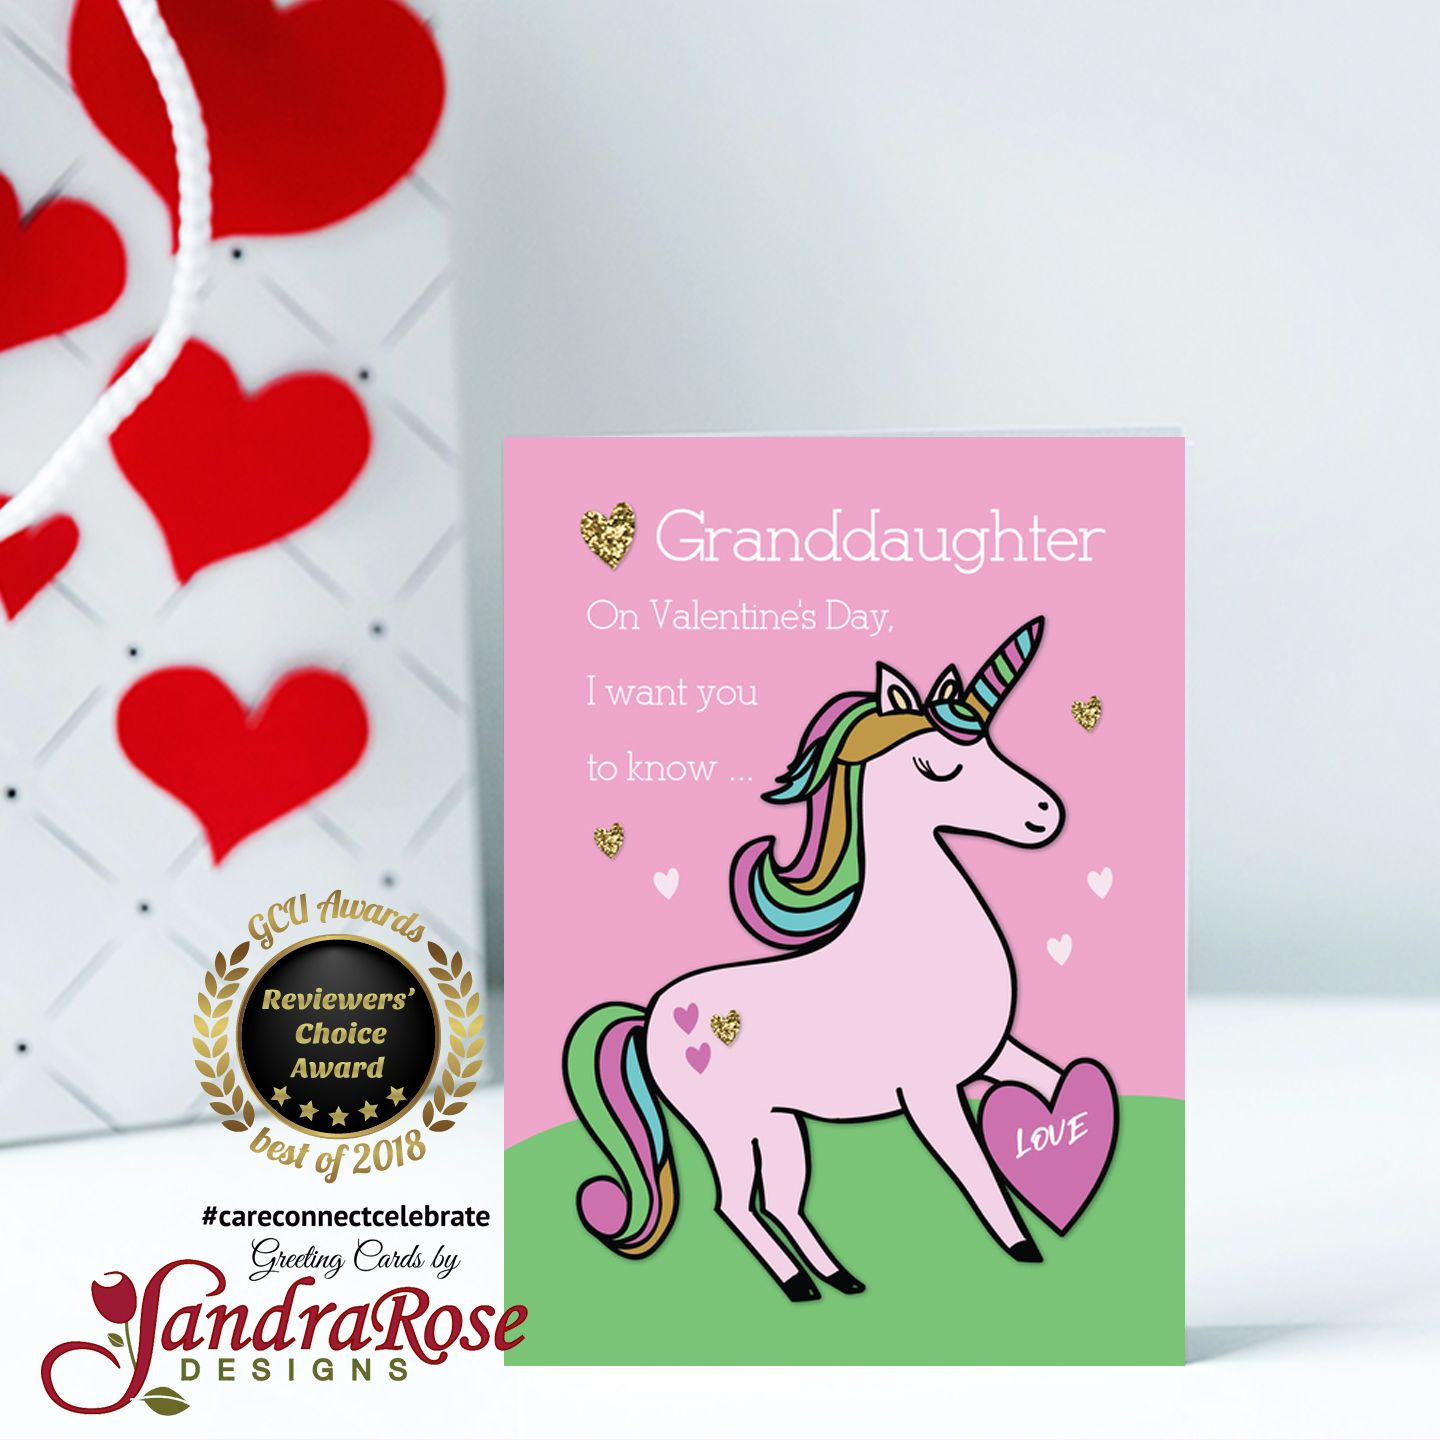 Granddaughter Magical Unicorn Valentine's Day card